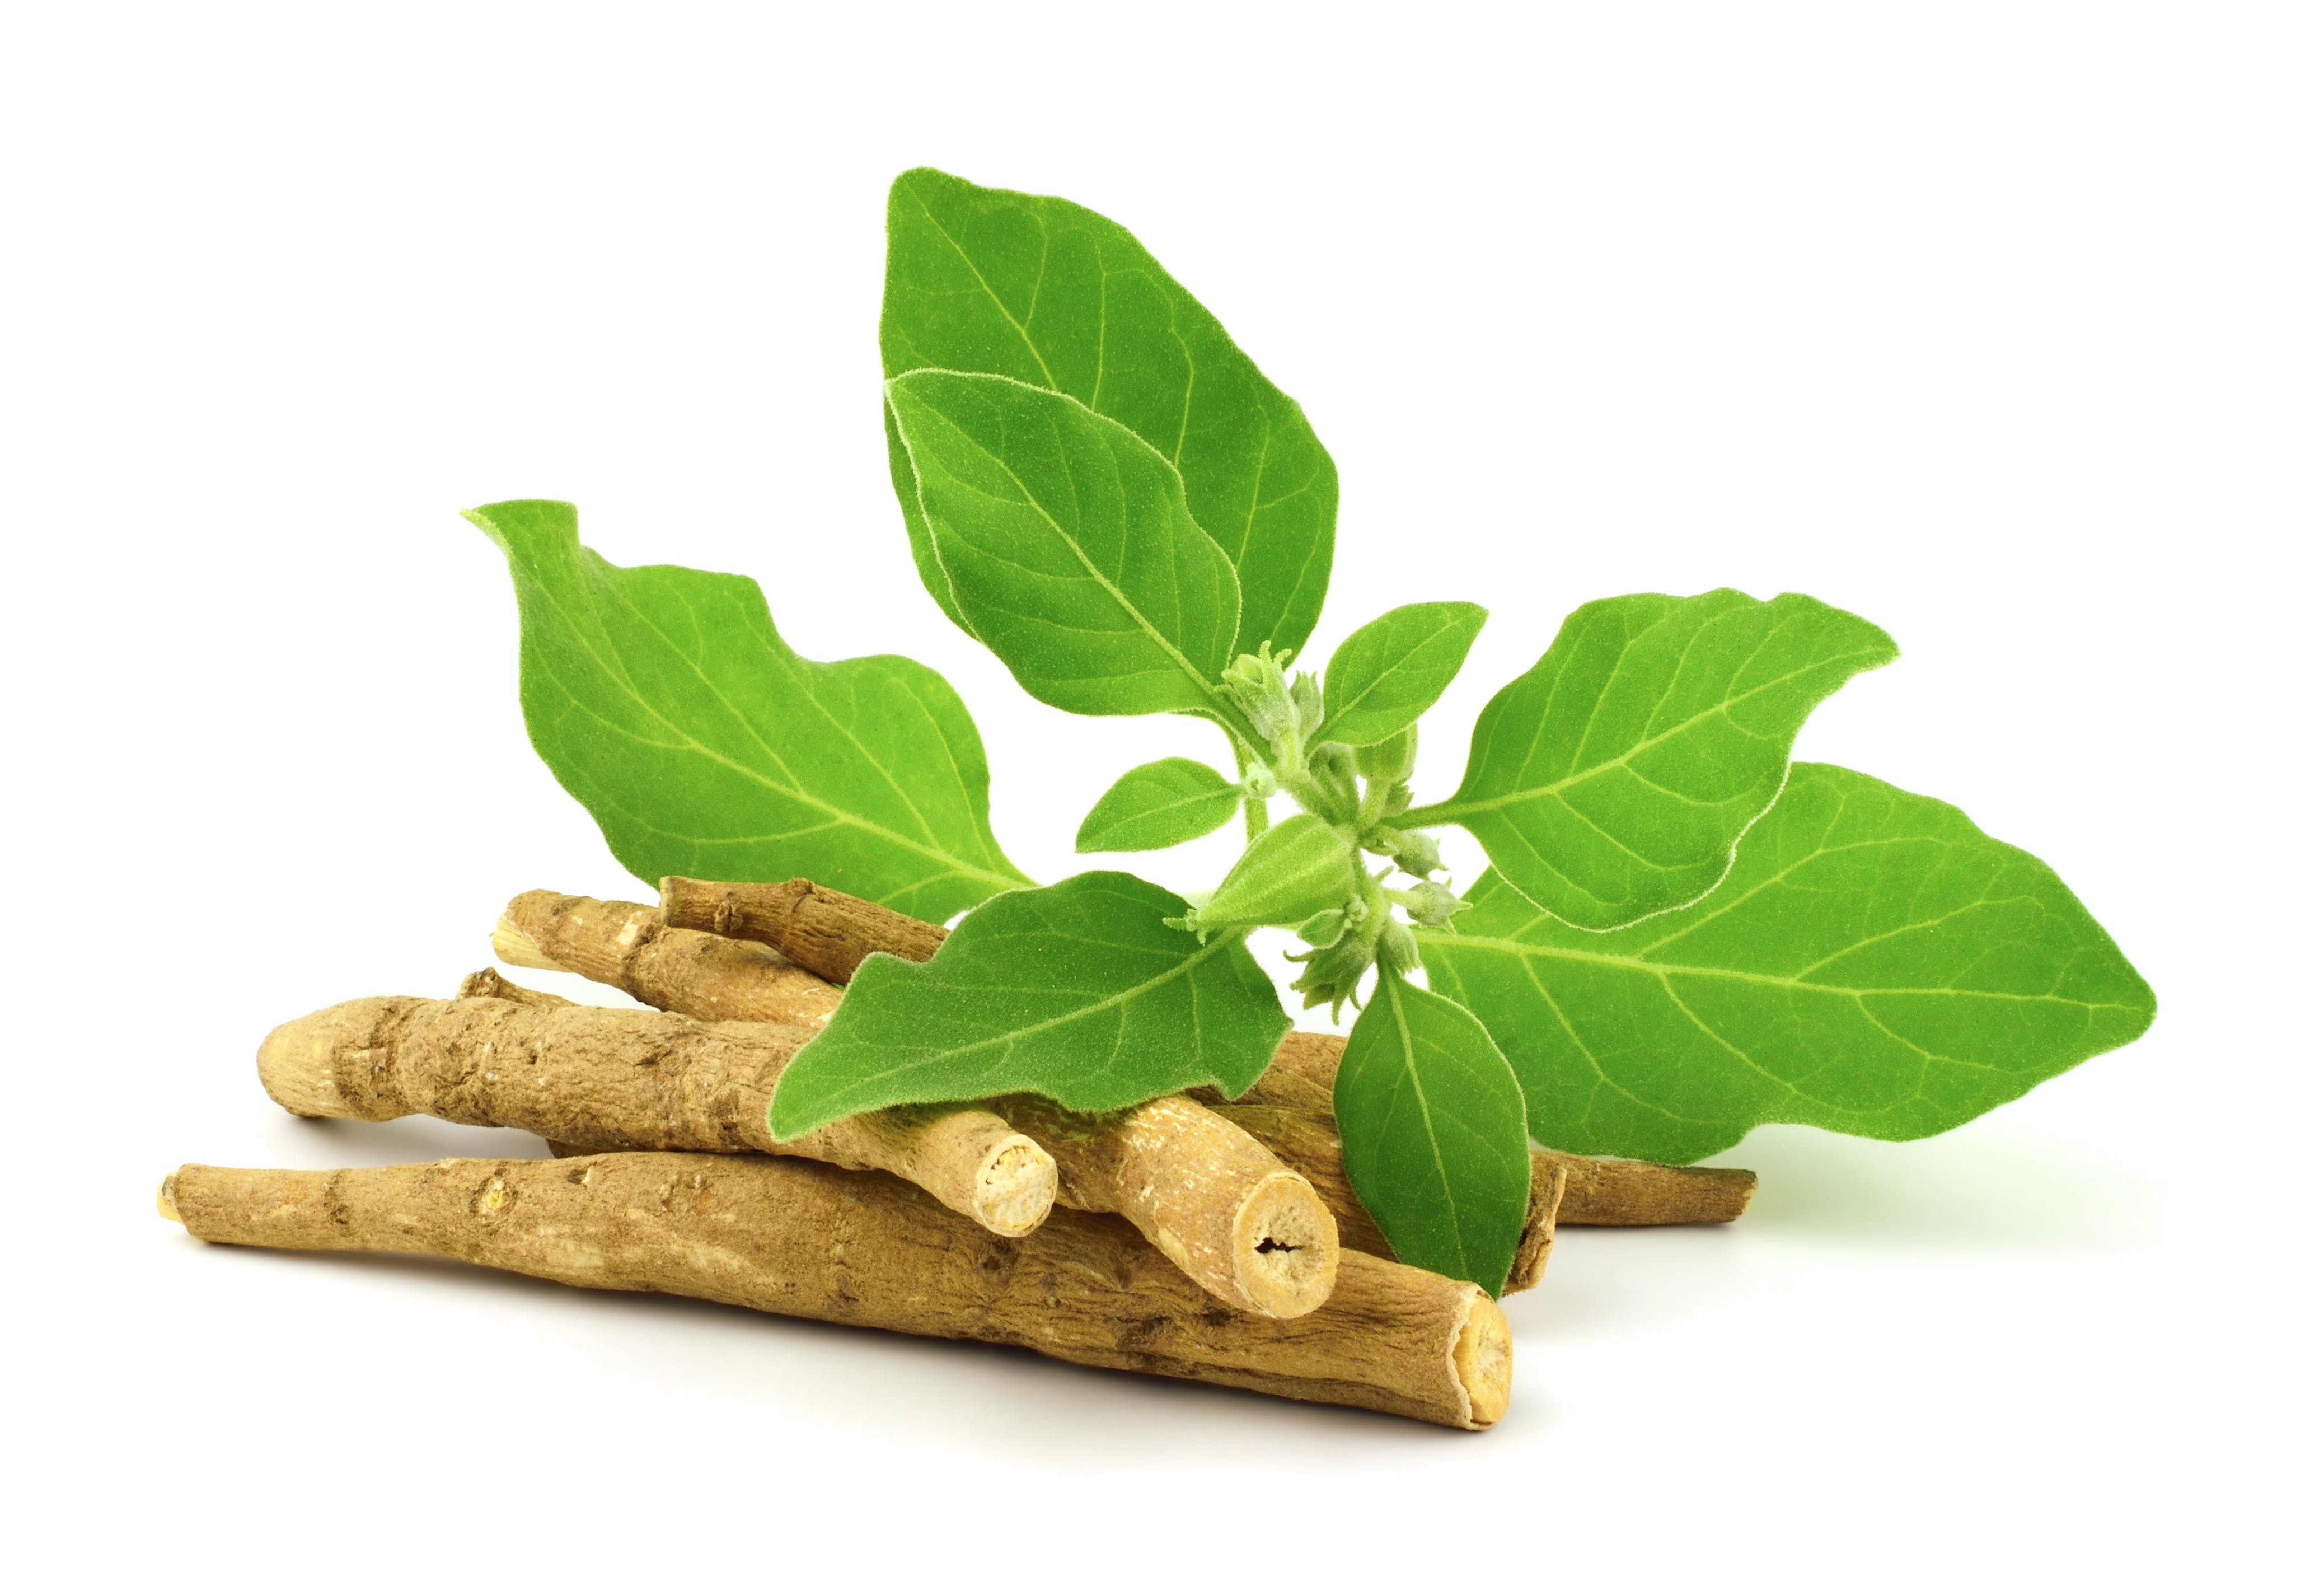 Ashwagandha dried root with fresh leaves